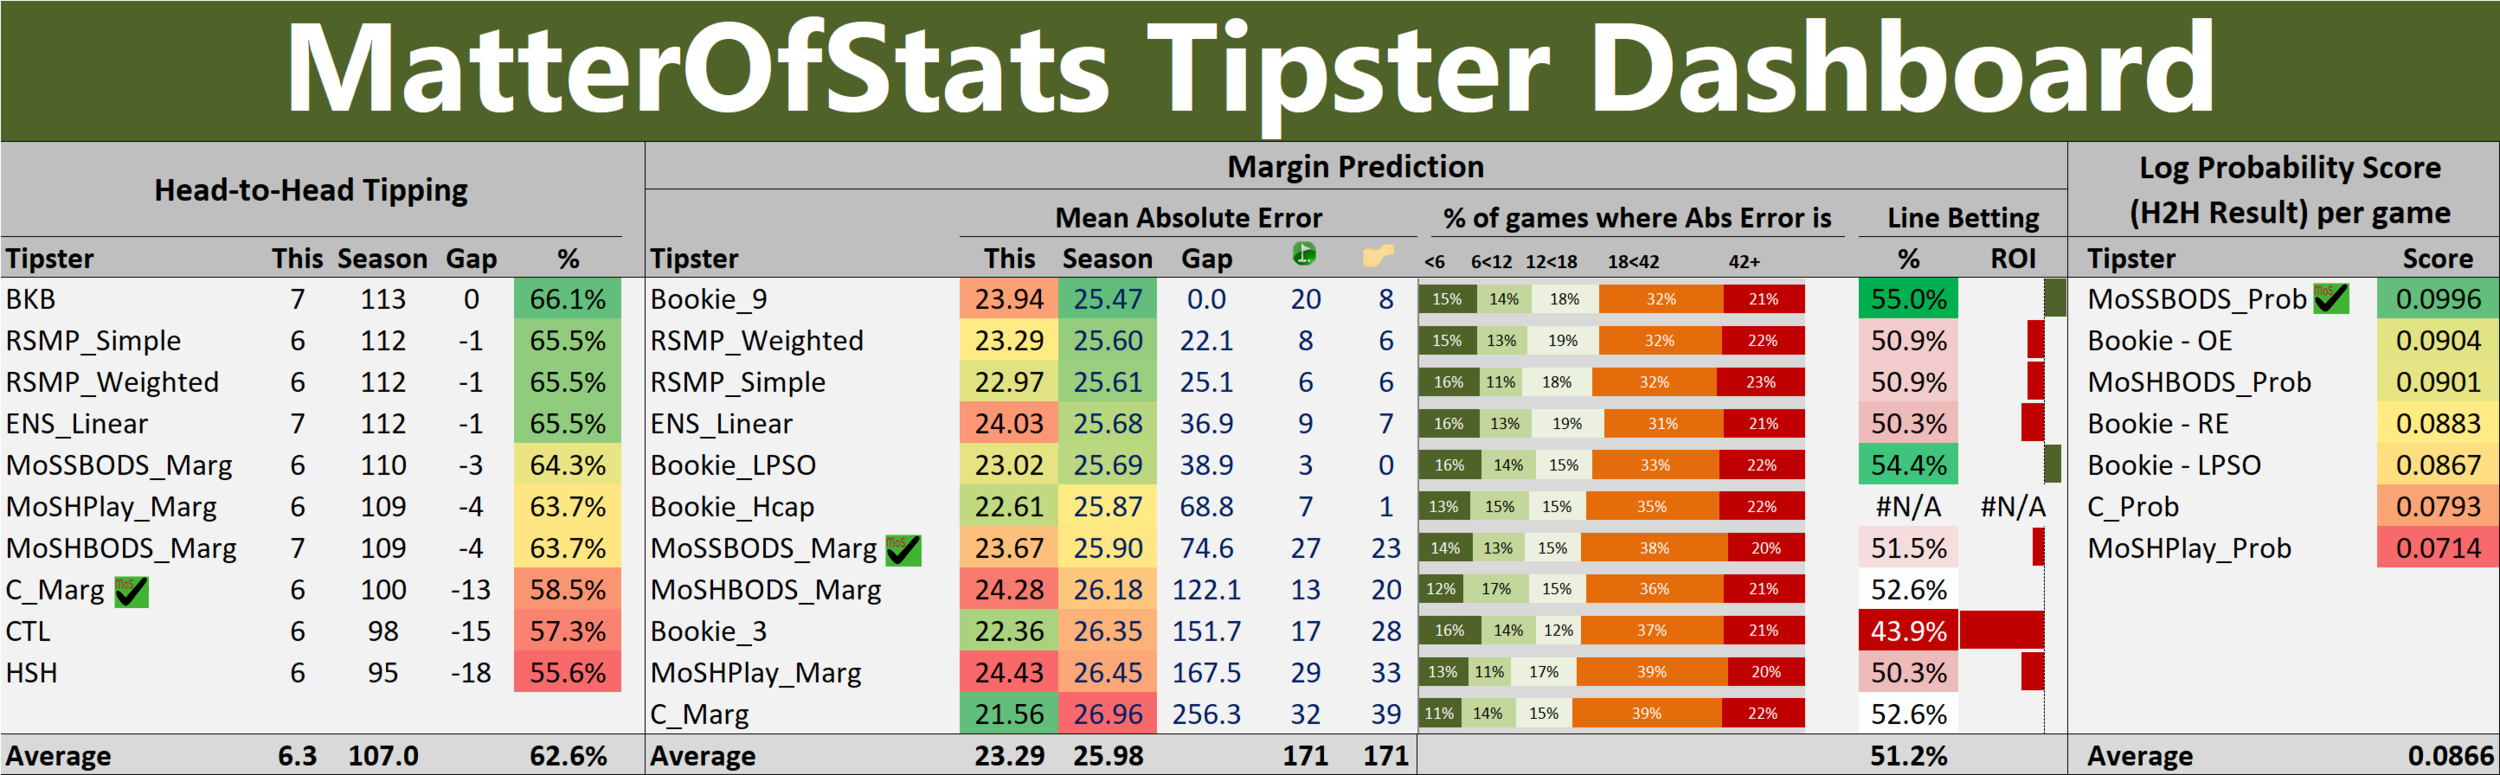 R20 - Tipster Dashboard.png